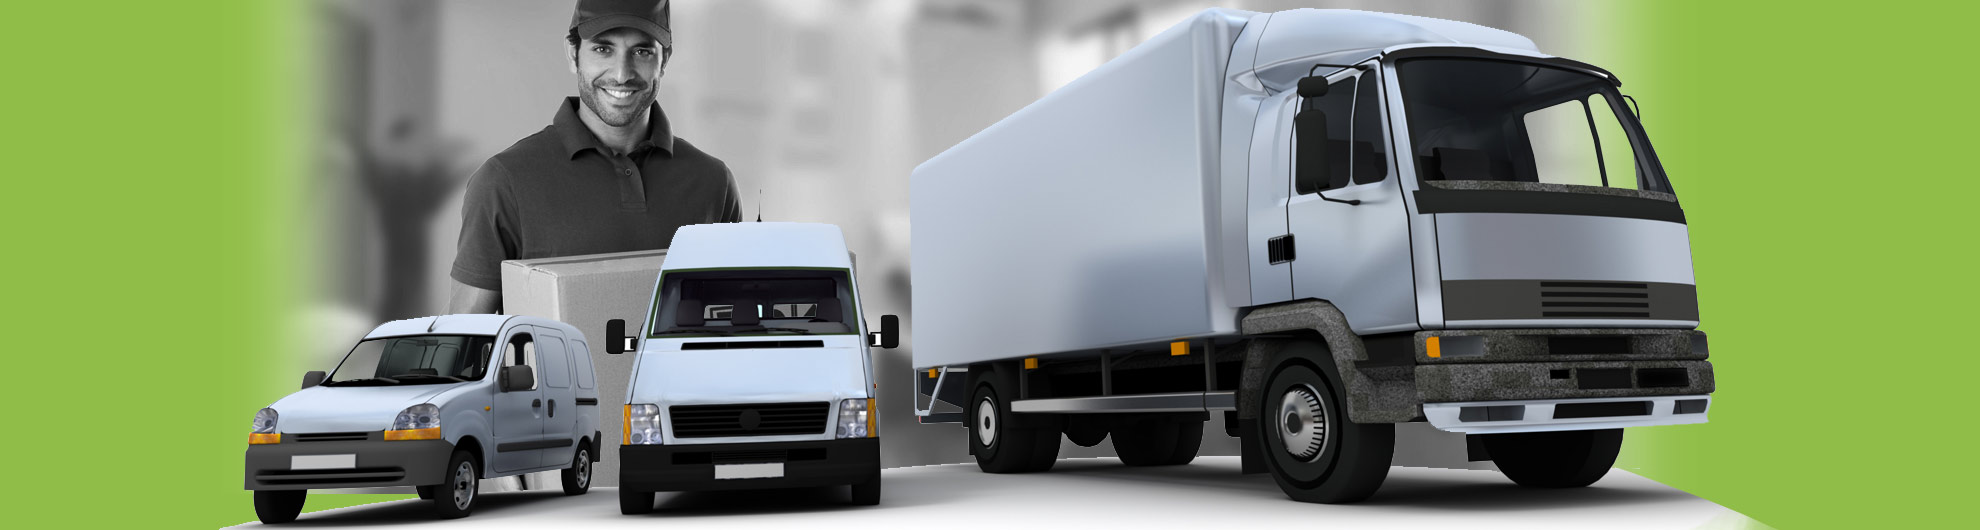 Phalaborwa  International Movers - Shipping Companies